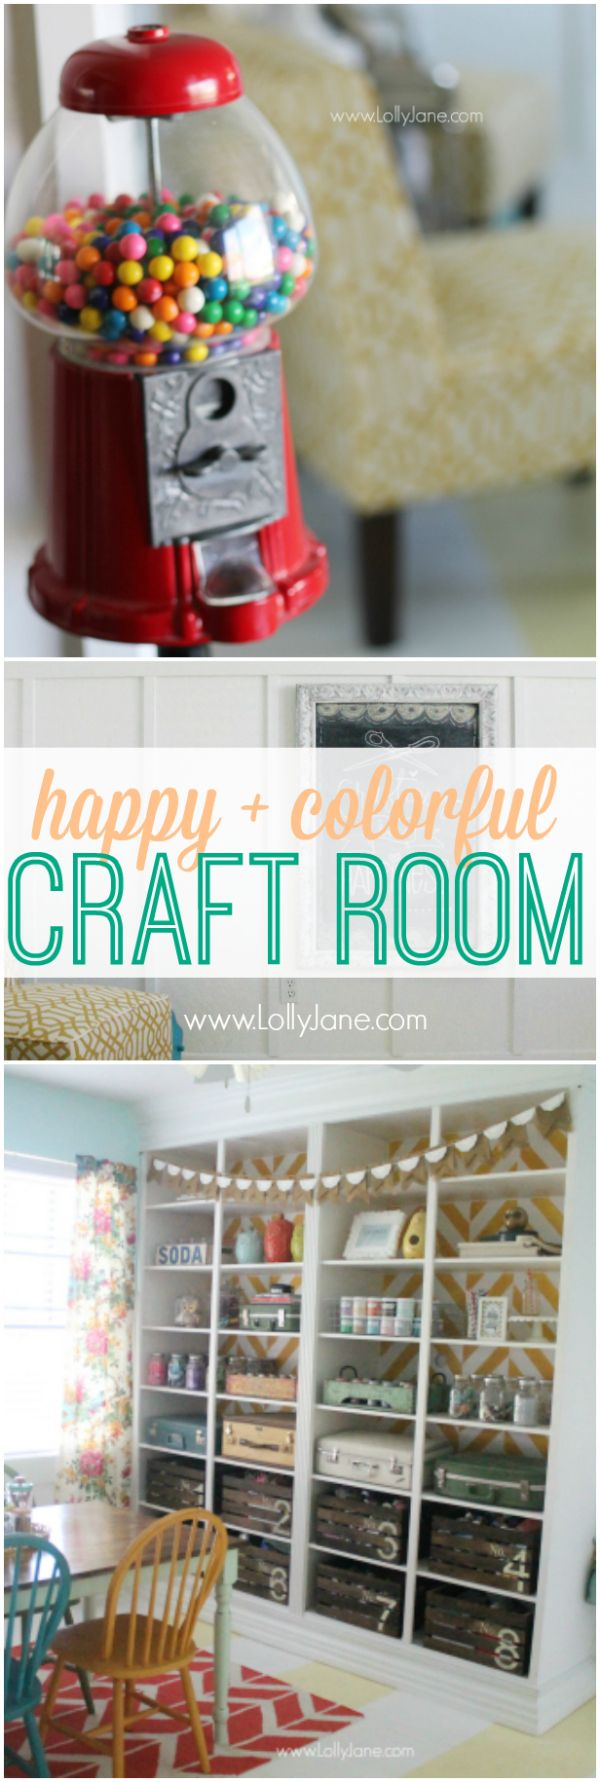 Happy colorful craft room, lots of pics!